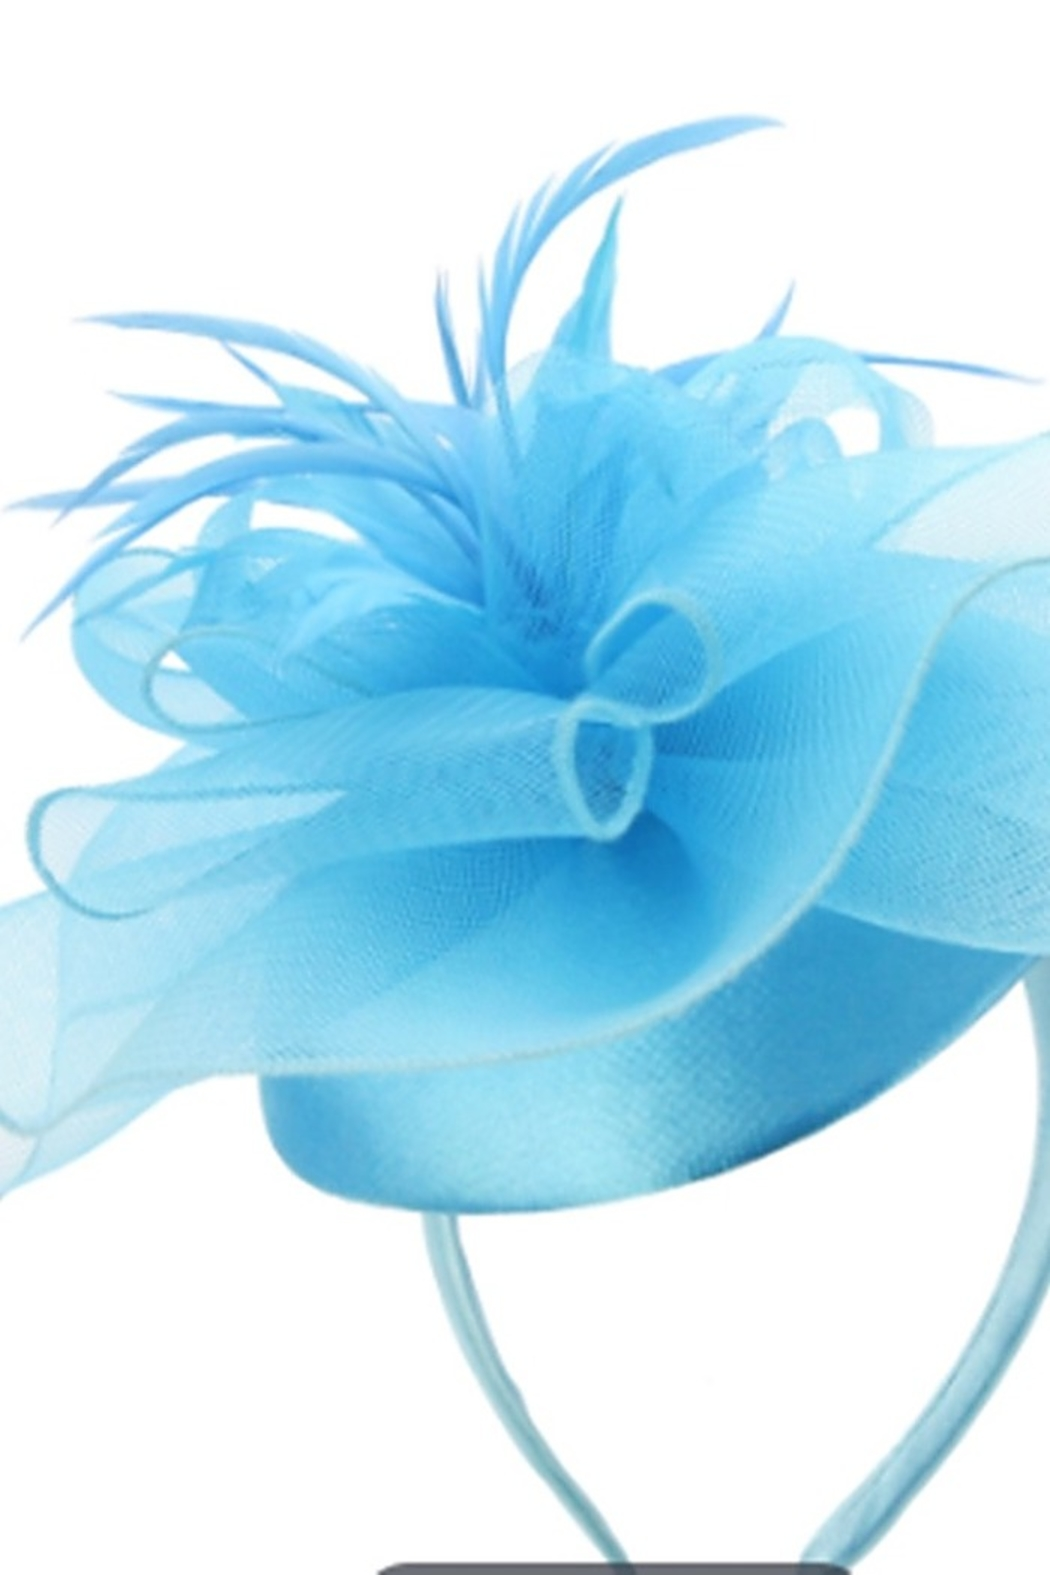 KIMBALS MESH FLORAL FEATHER CAP FASCINATOR - Turquoise - Main Image